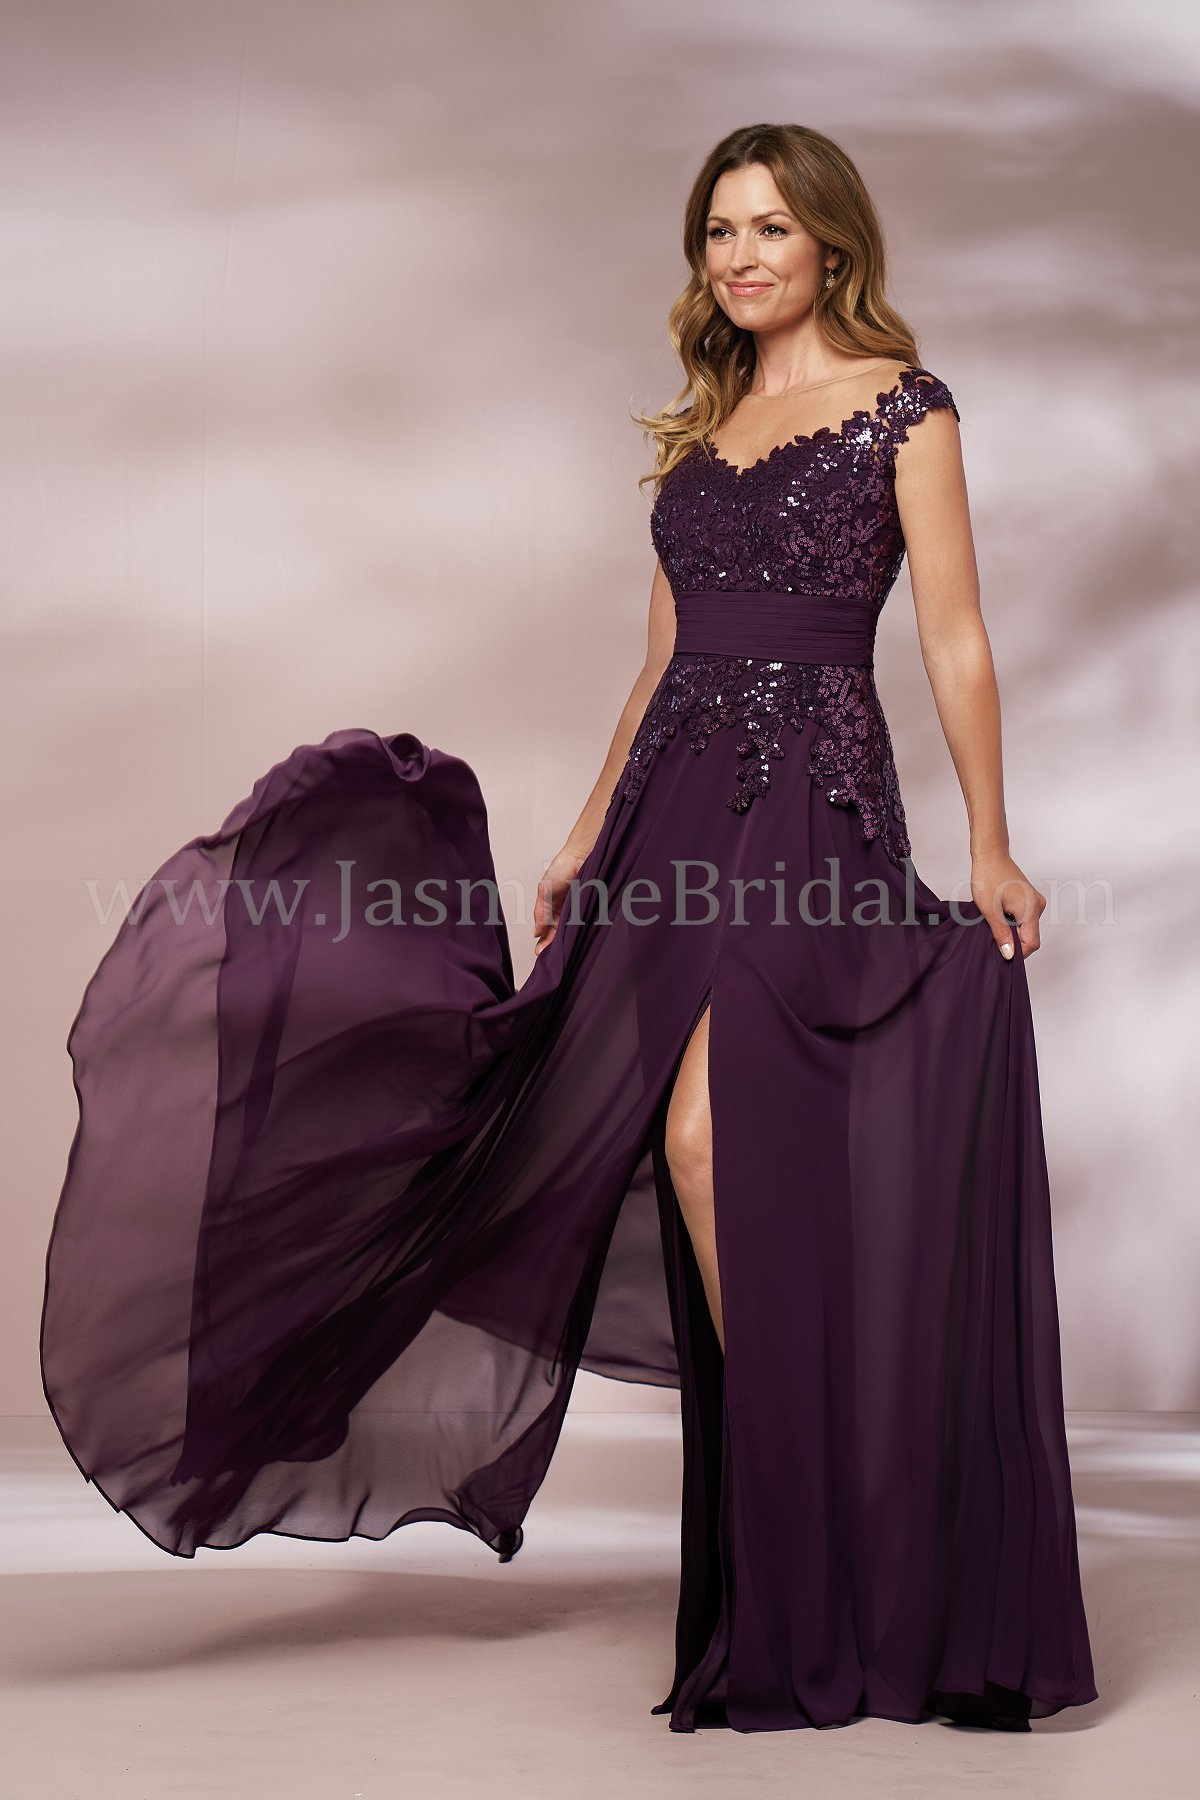 mother-of-the-bride-dresses-J205012-F (1)